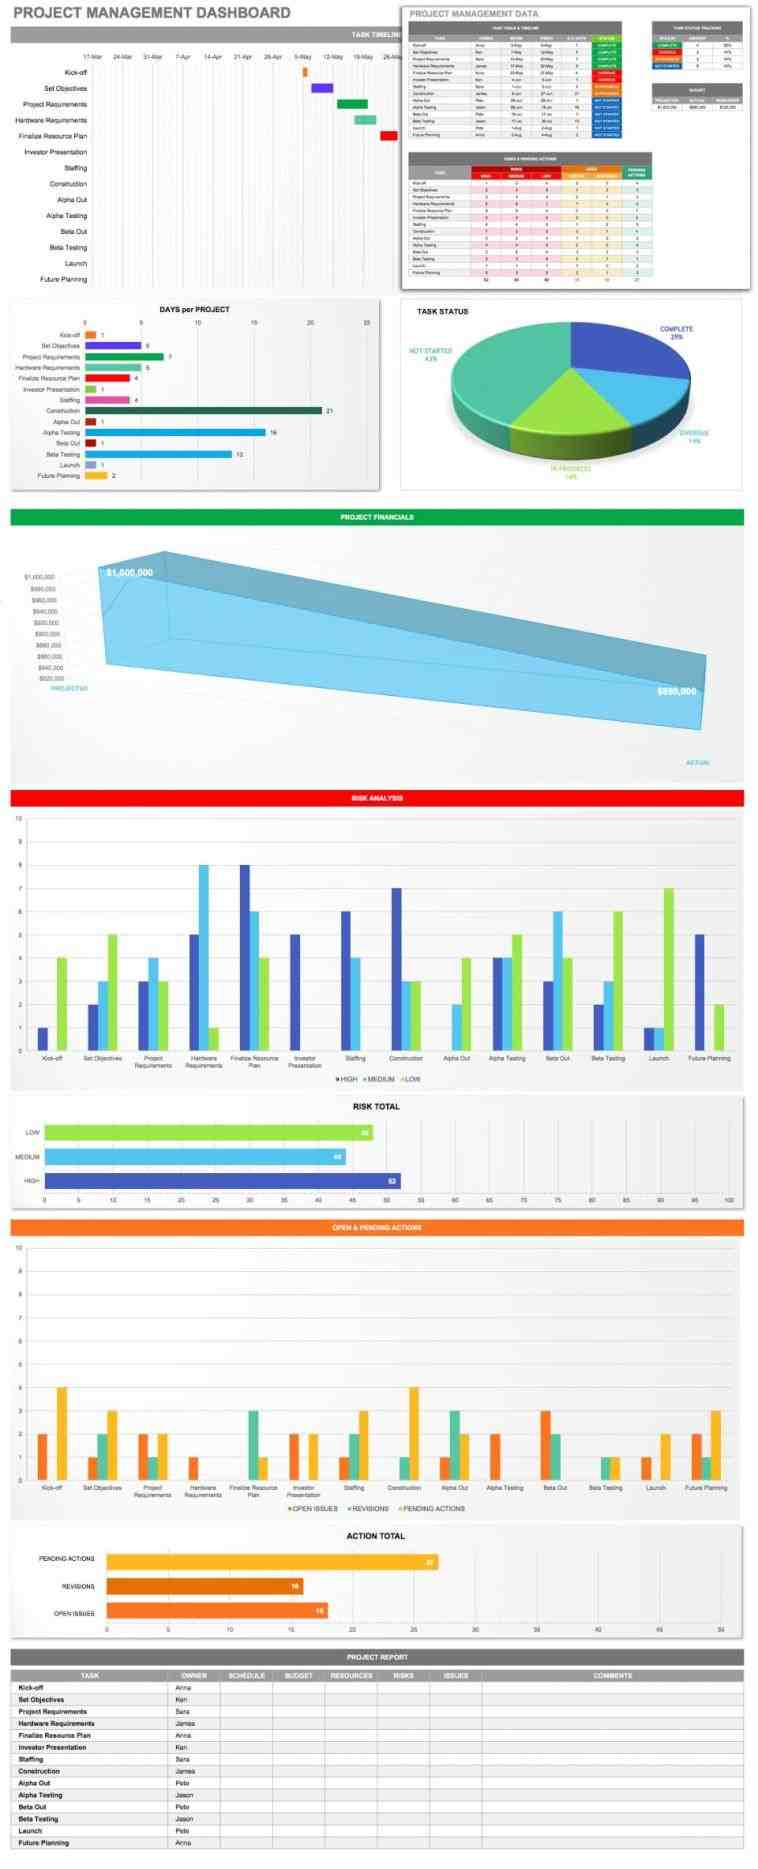 rhyoutubecom create Simple Excel Dashboard Templates excel customer kpi dashboard free rhyoutubecom employee attendance planner and tracker templates rhpinterestcom employee Simple